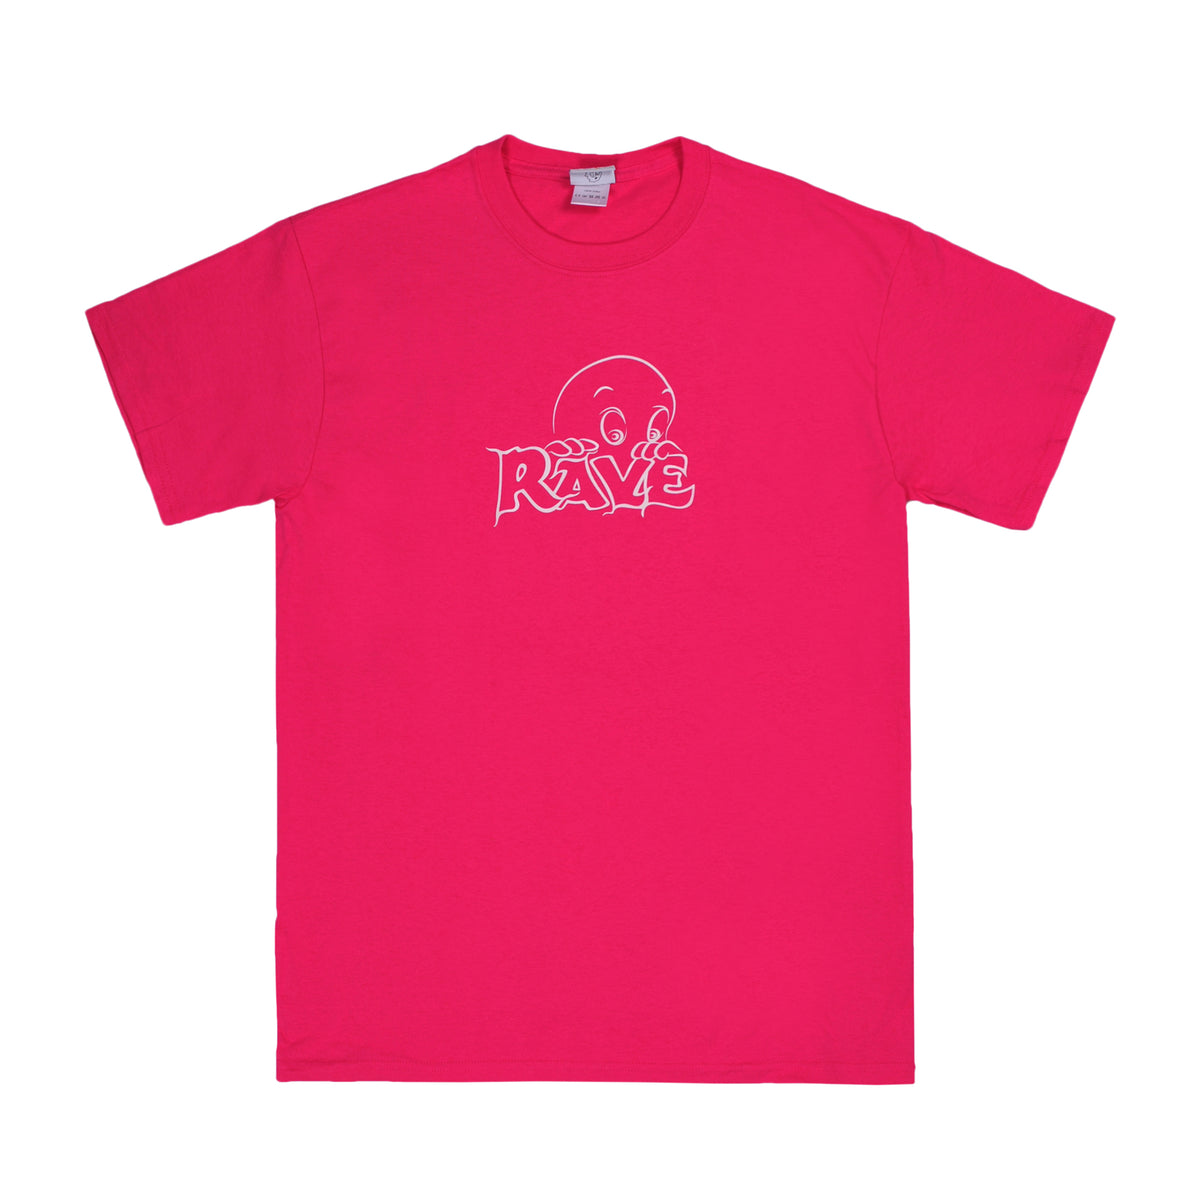 FRIENDLY GHOST pink tee - RAVE skateboards